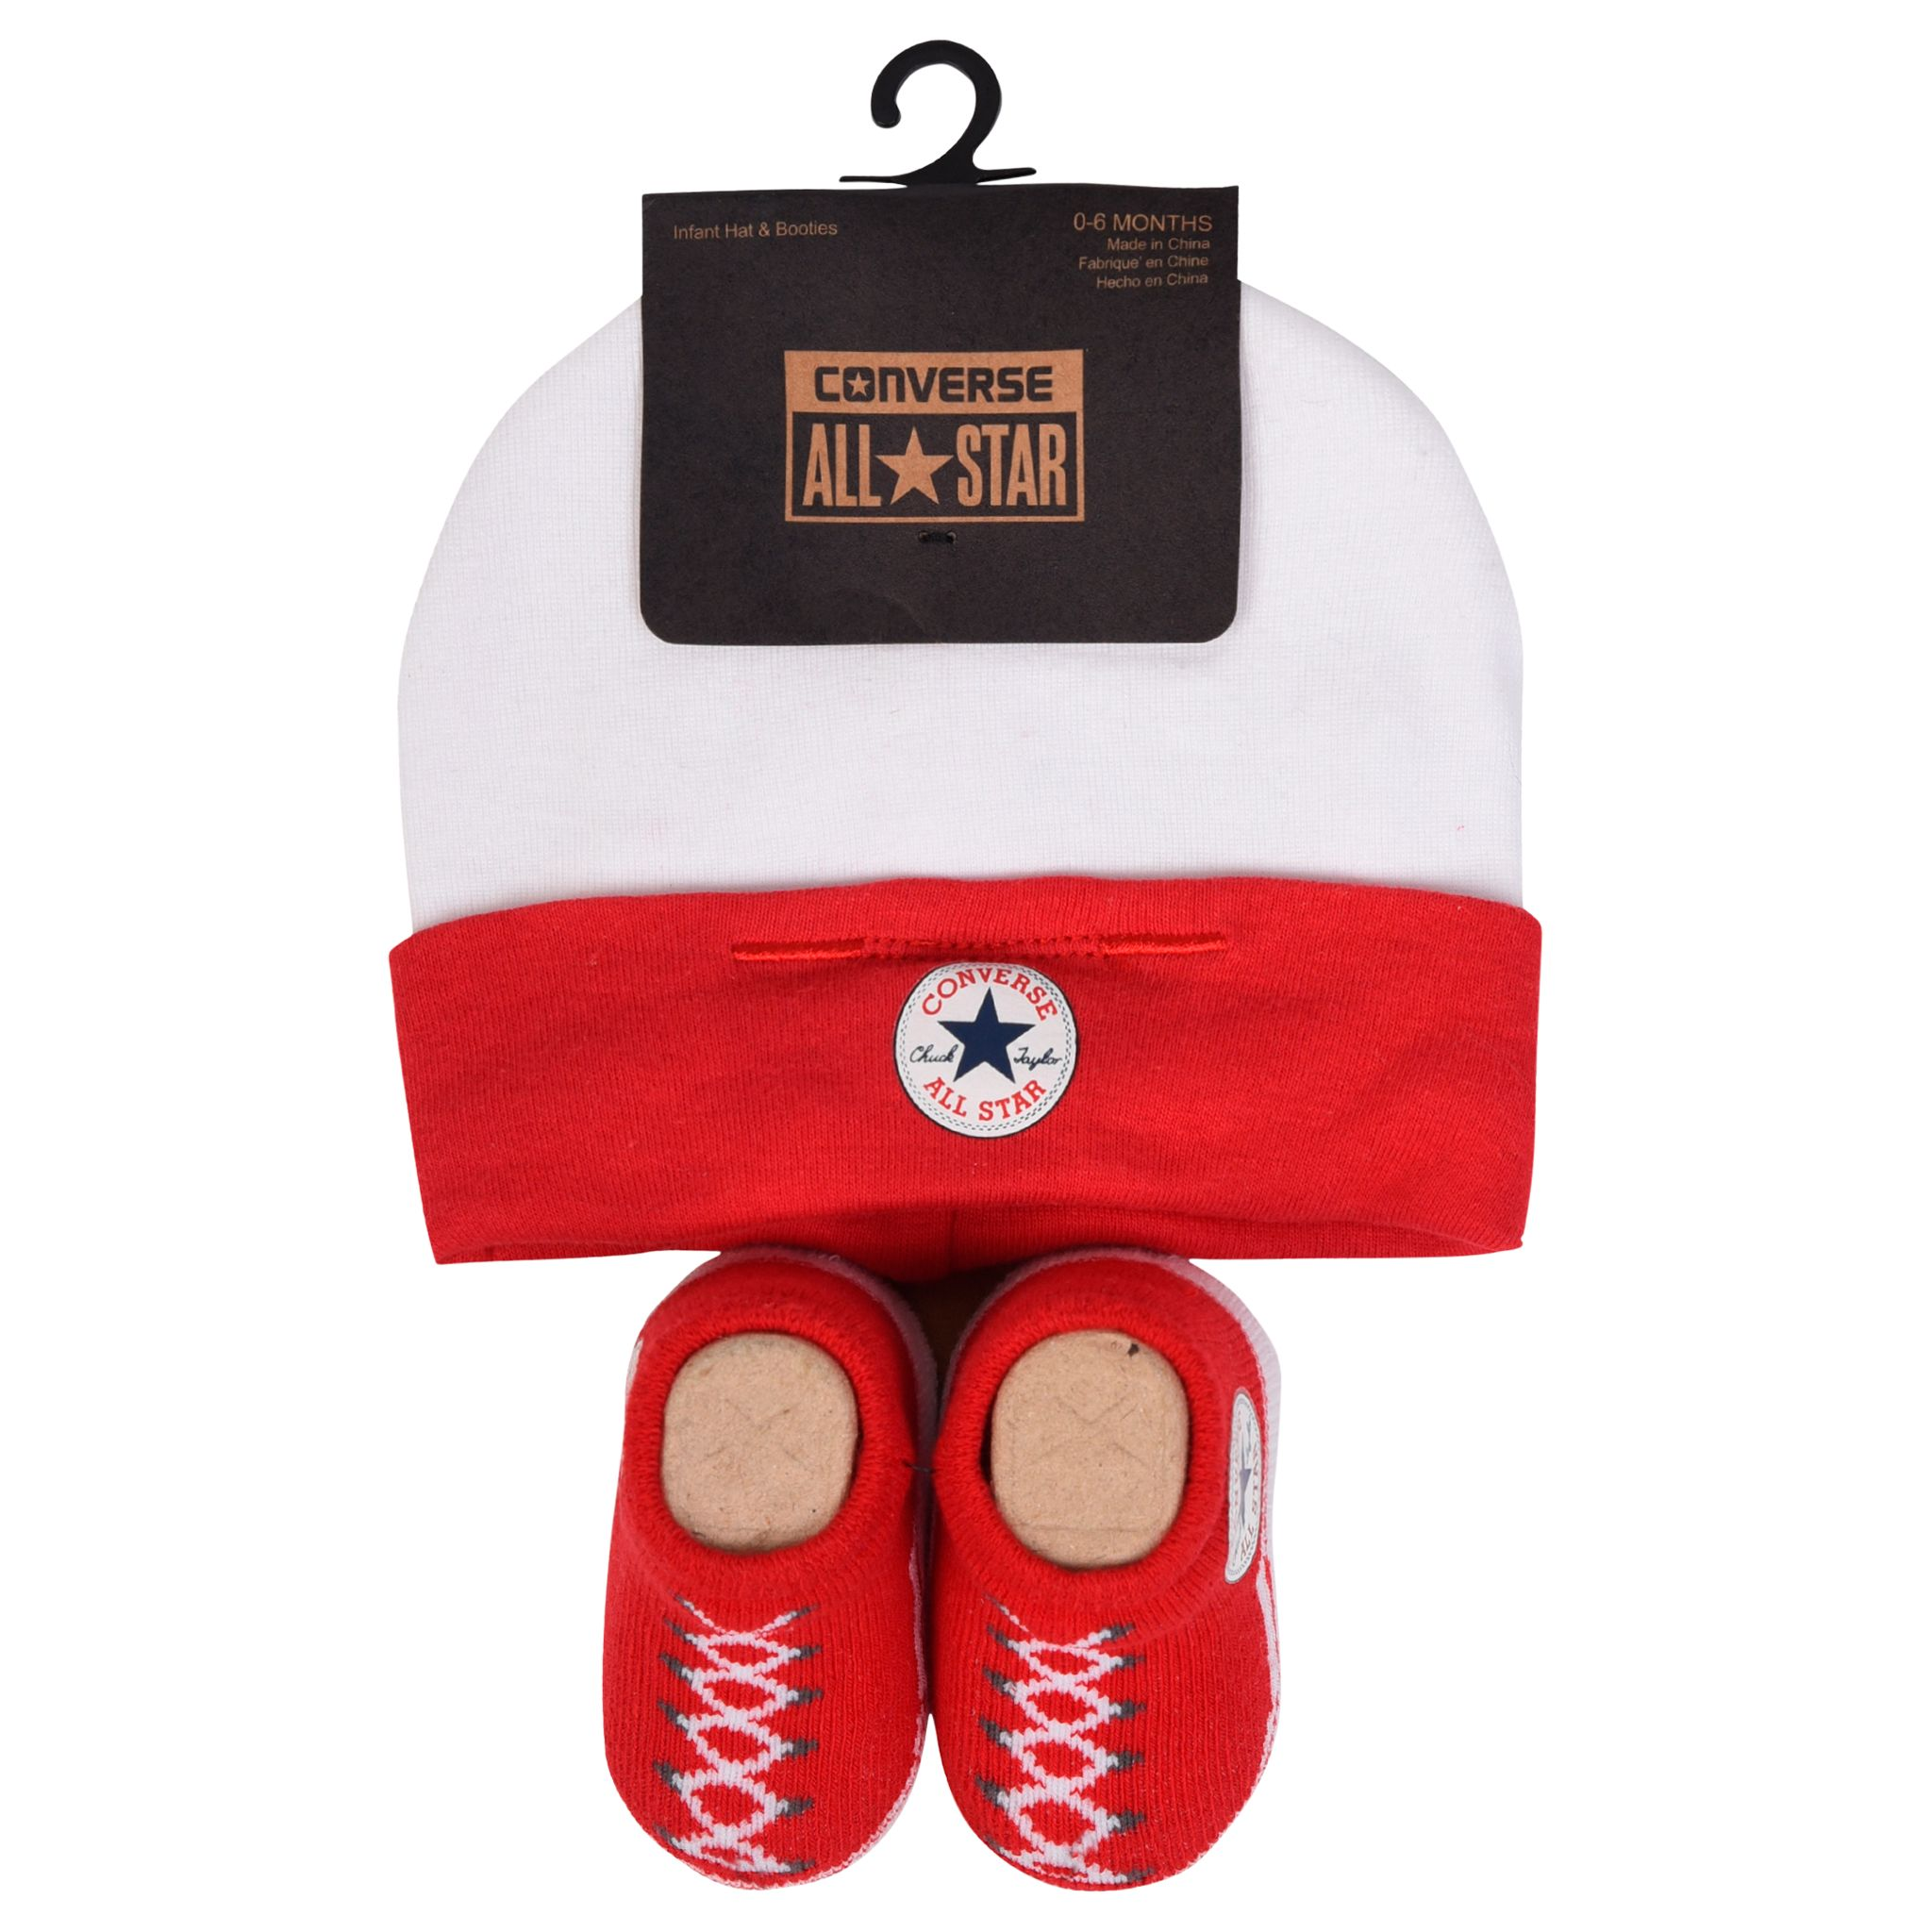 Converse Baby Booties And Hat Set 39c22b2c62c0